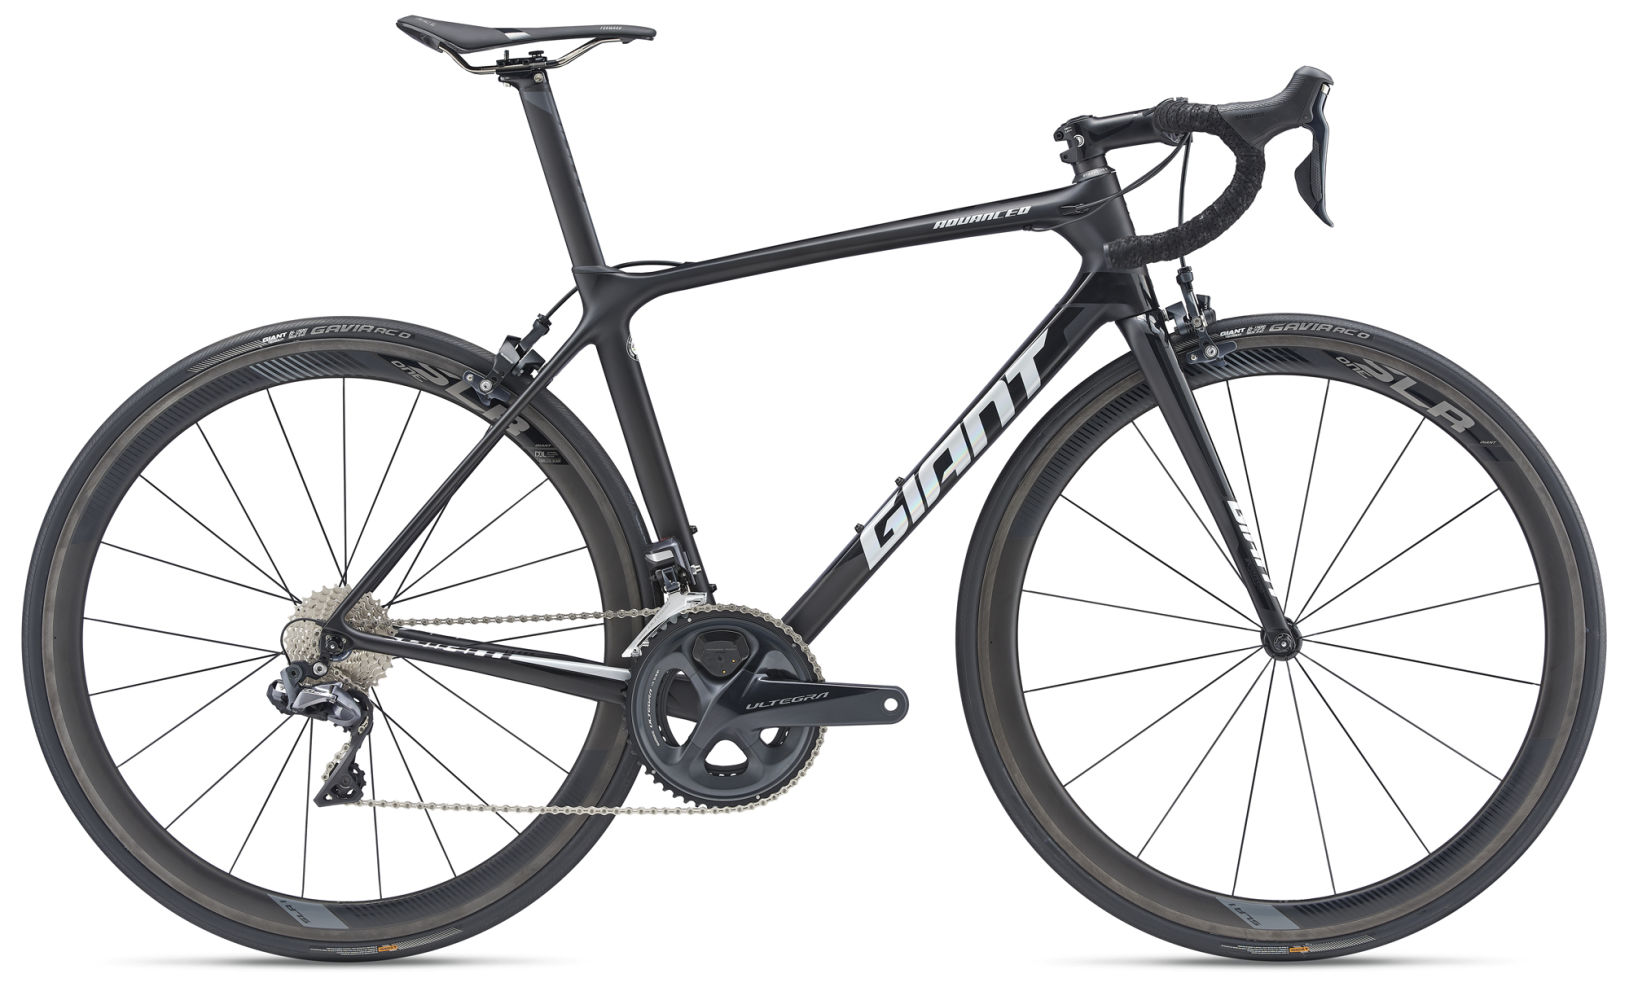 66ca86a83f8 Giant TCR 2019 road bike range explained - Cycling Weekly